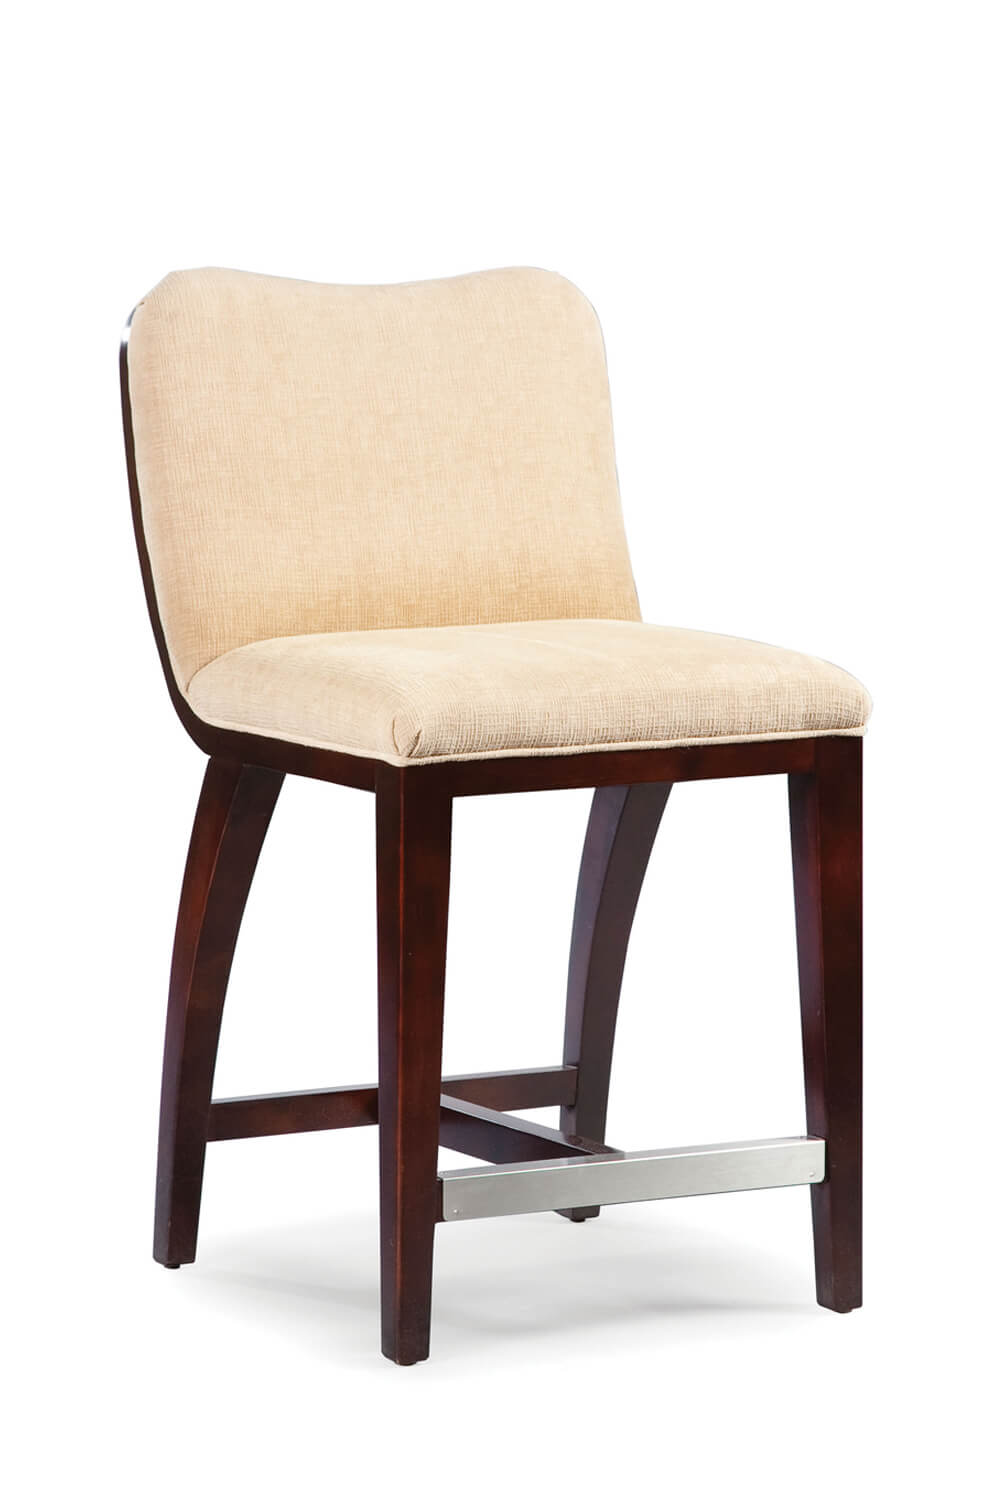 Fairfield's Sherman Wooden Counter Stool